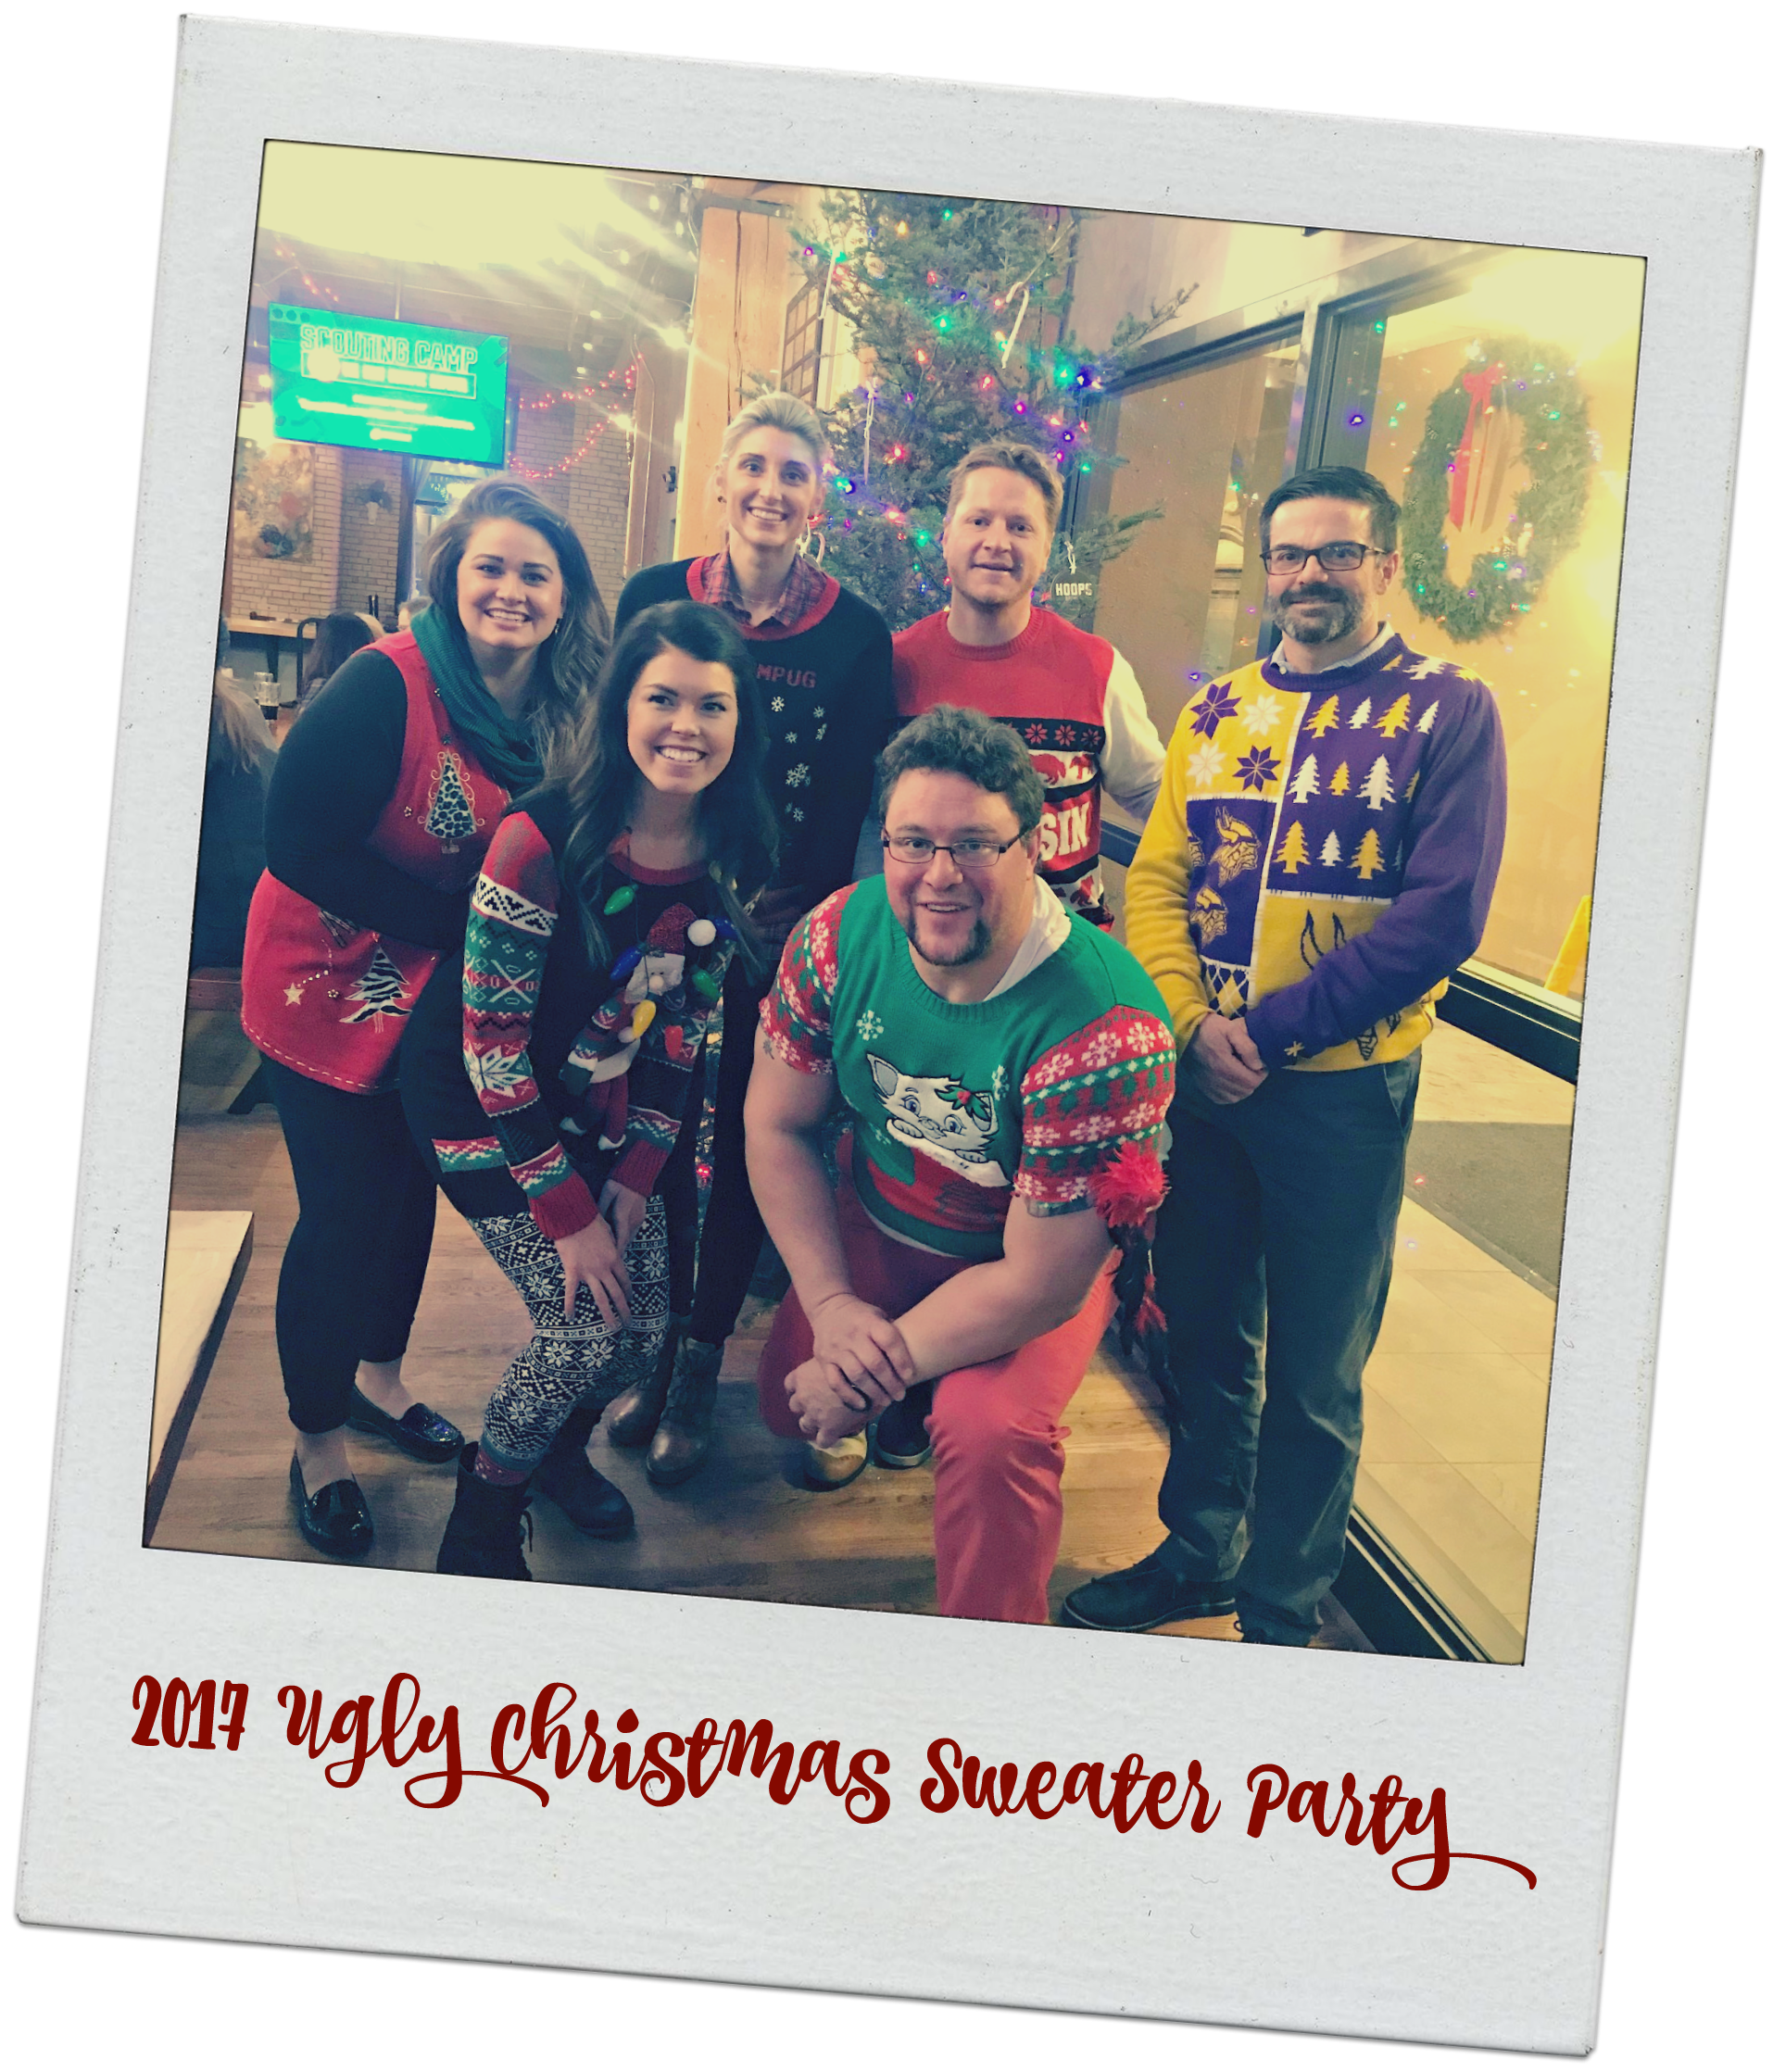 2017 Ugly Christmas Sweater Party